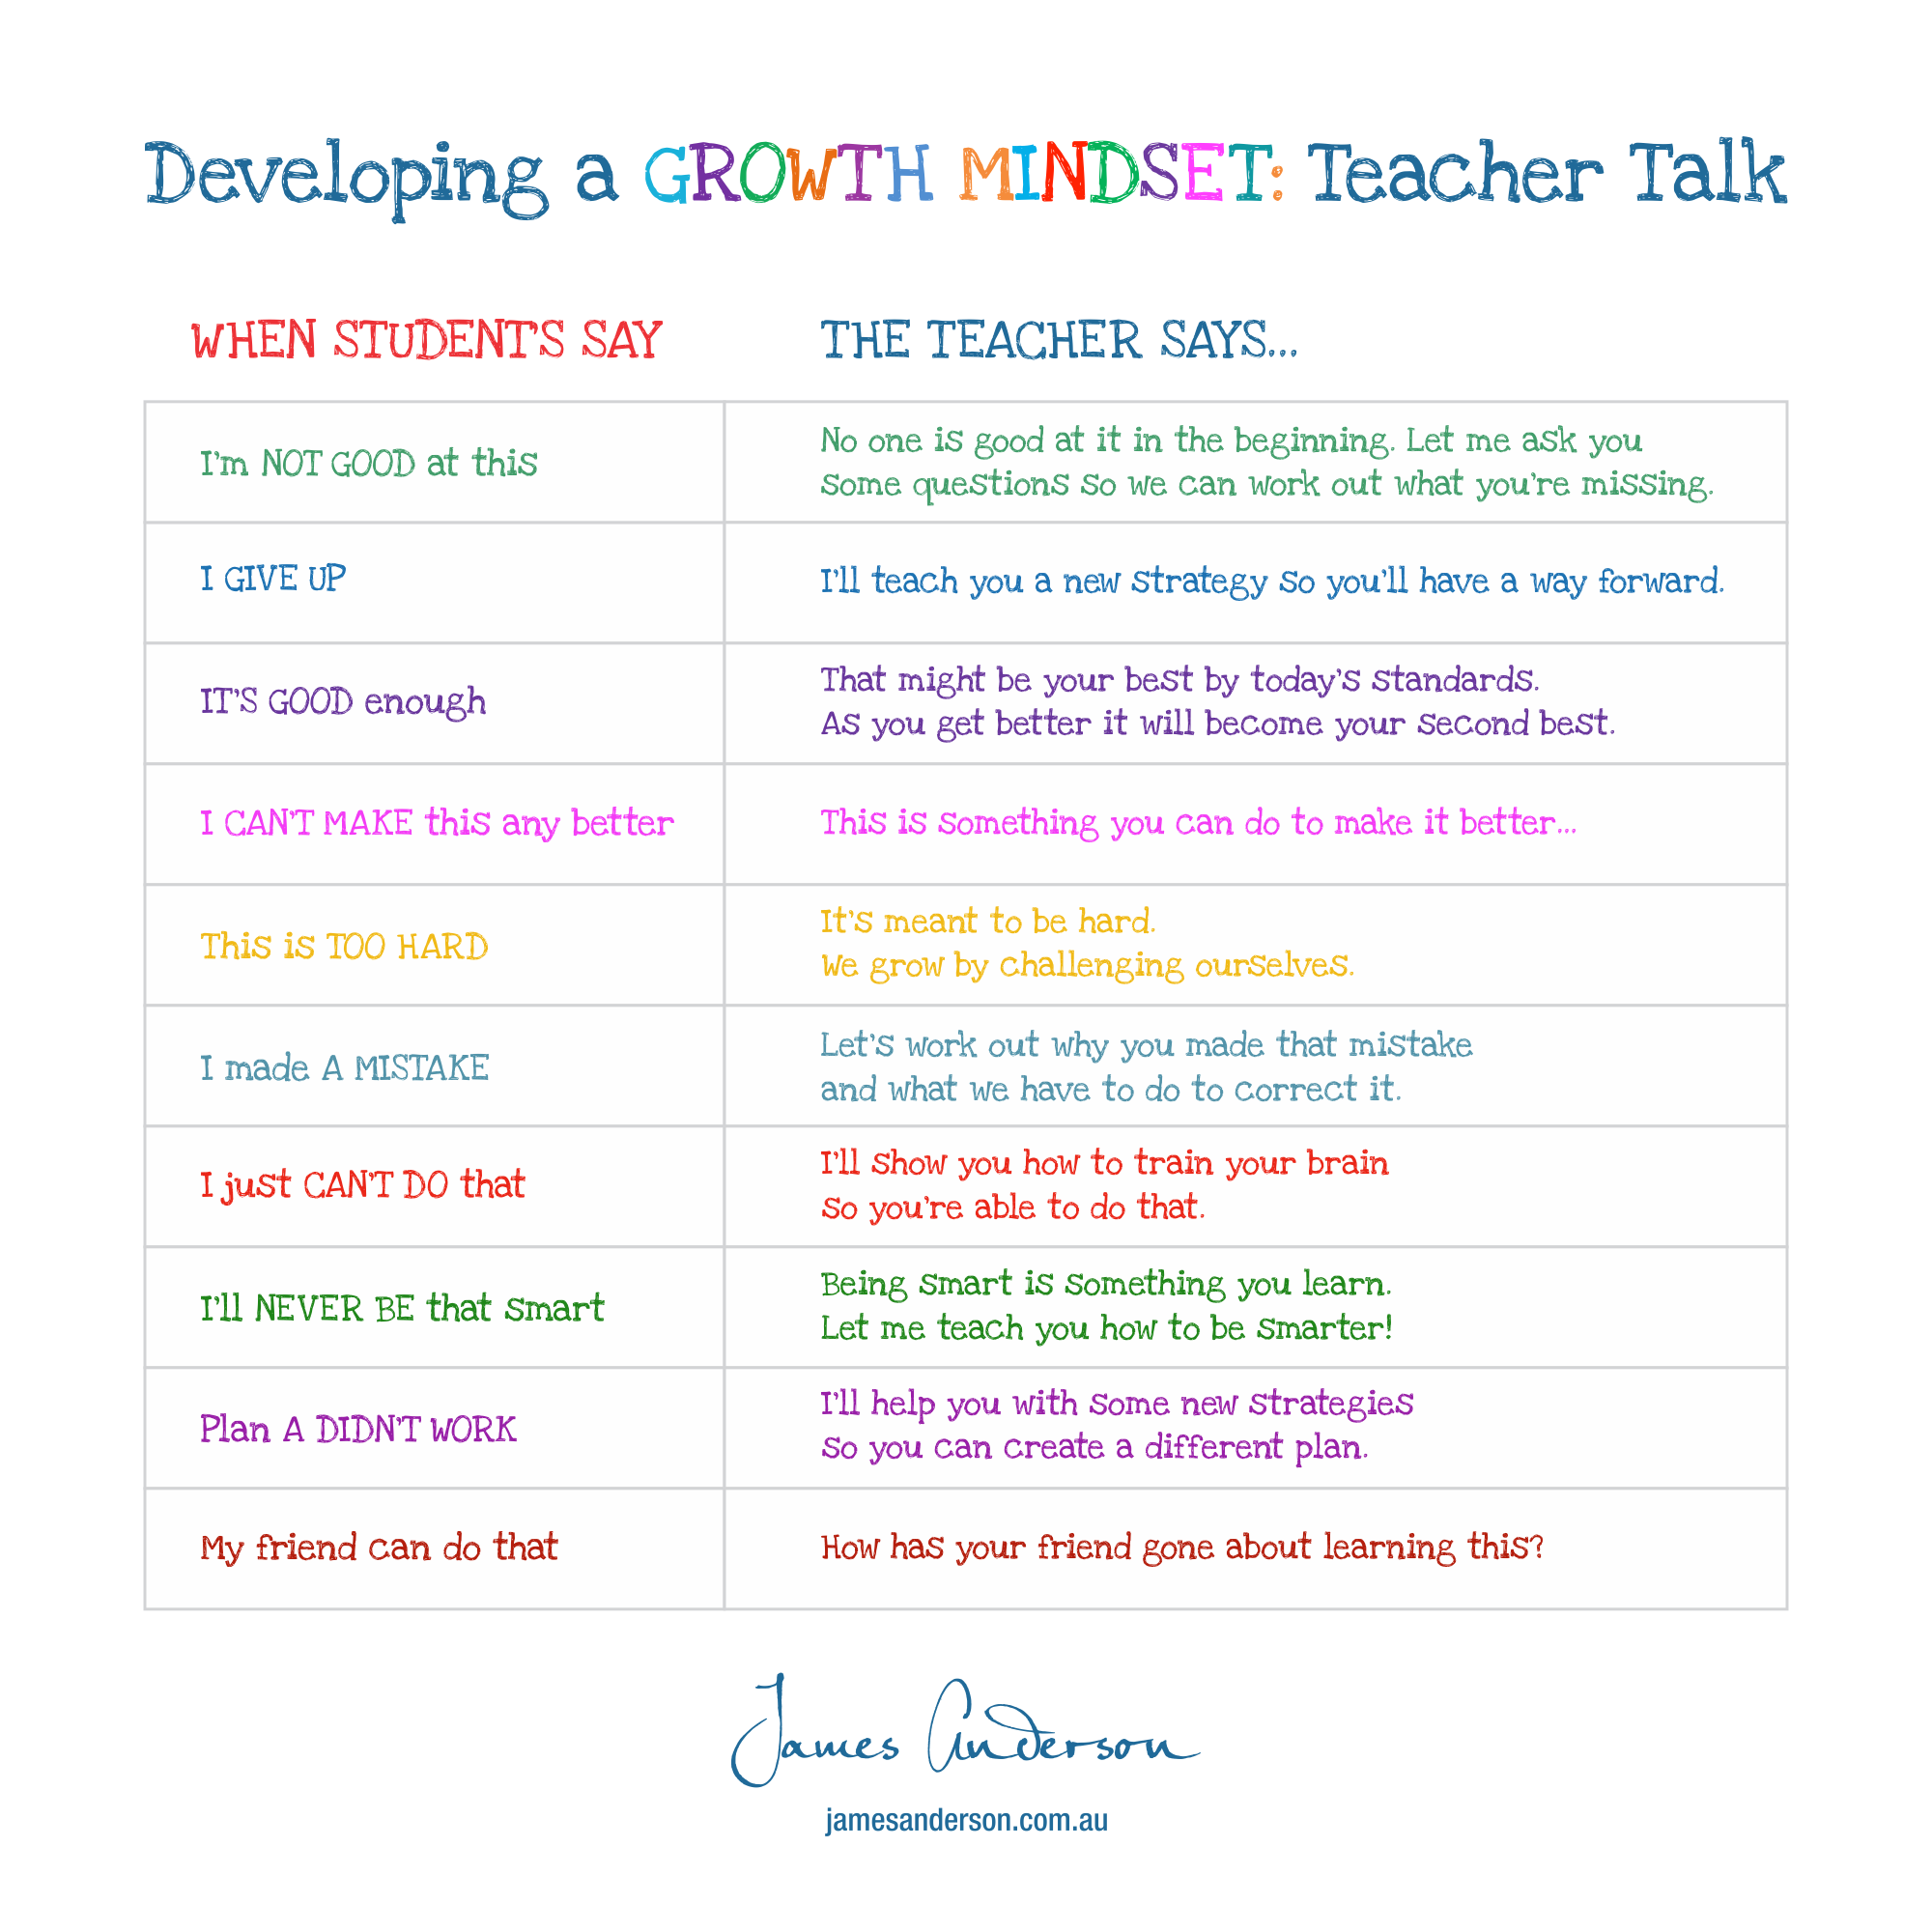 How Teachers Can Create Growth Mindset >> Change Your Mindset Then Change Your Words Mindful By Design